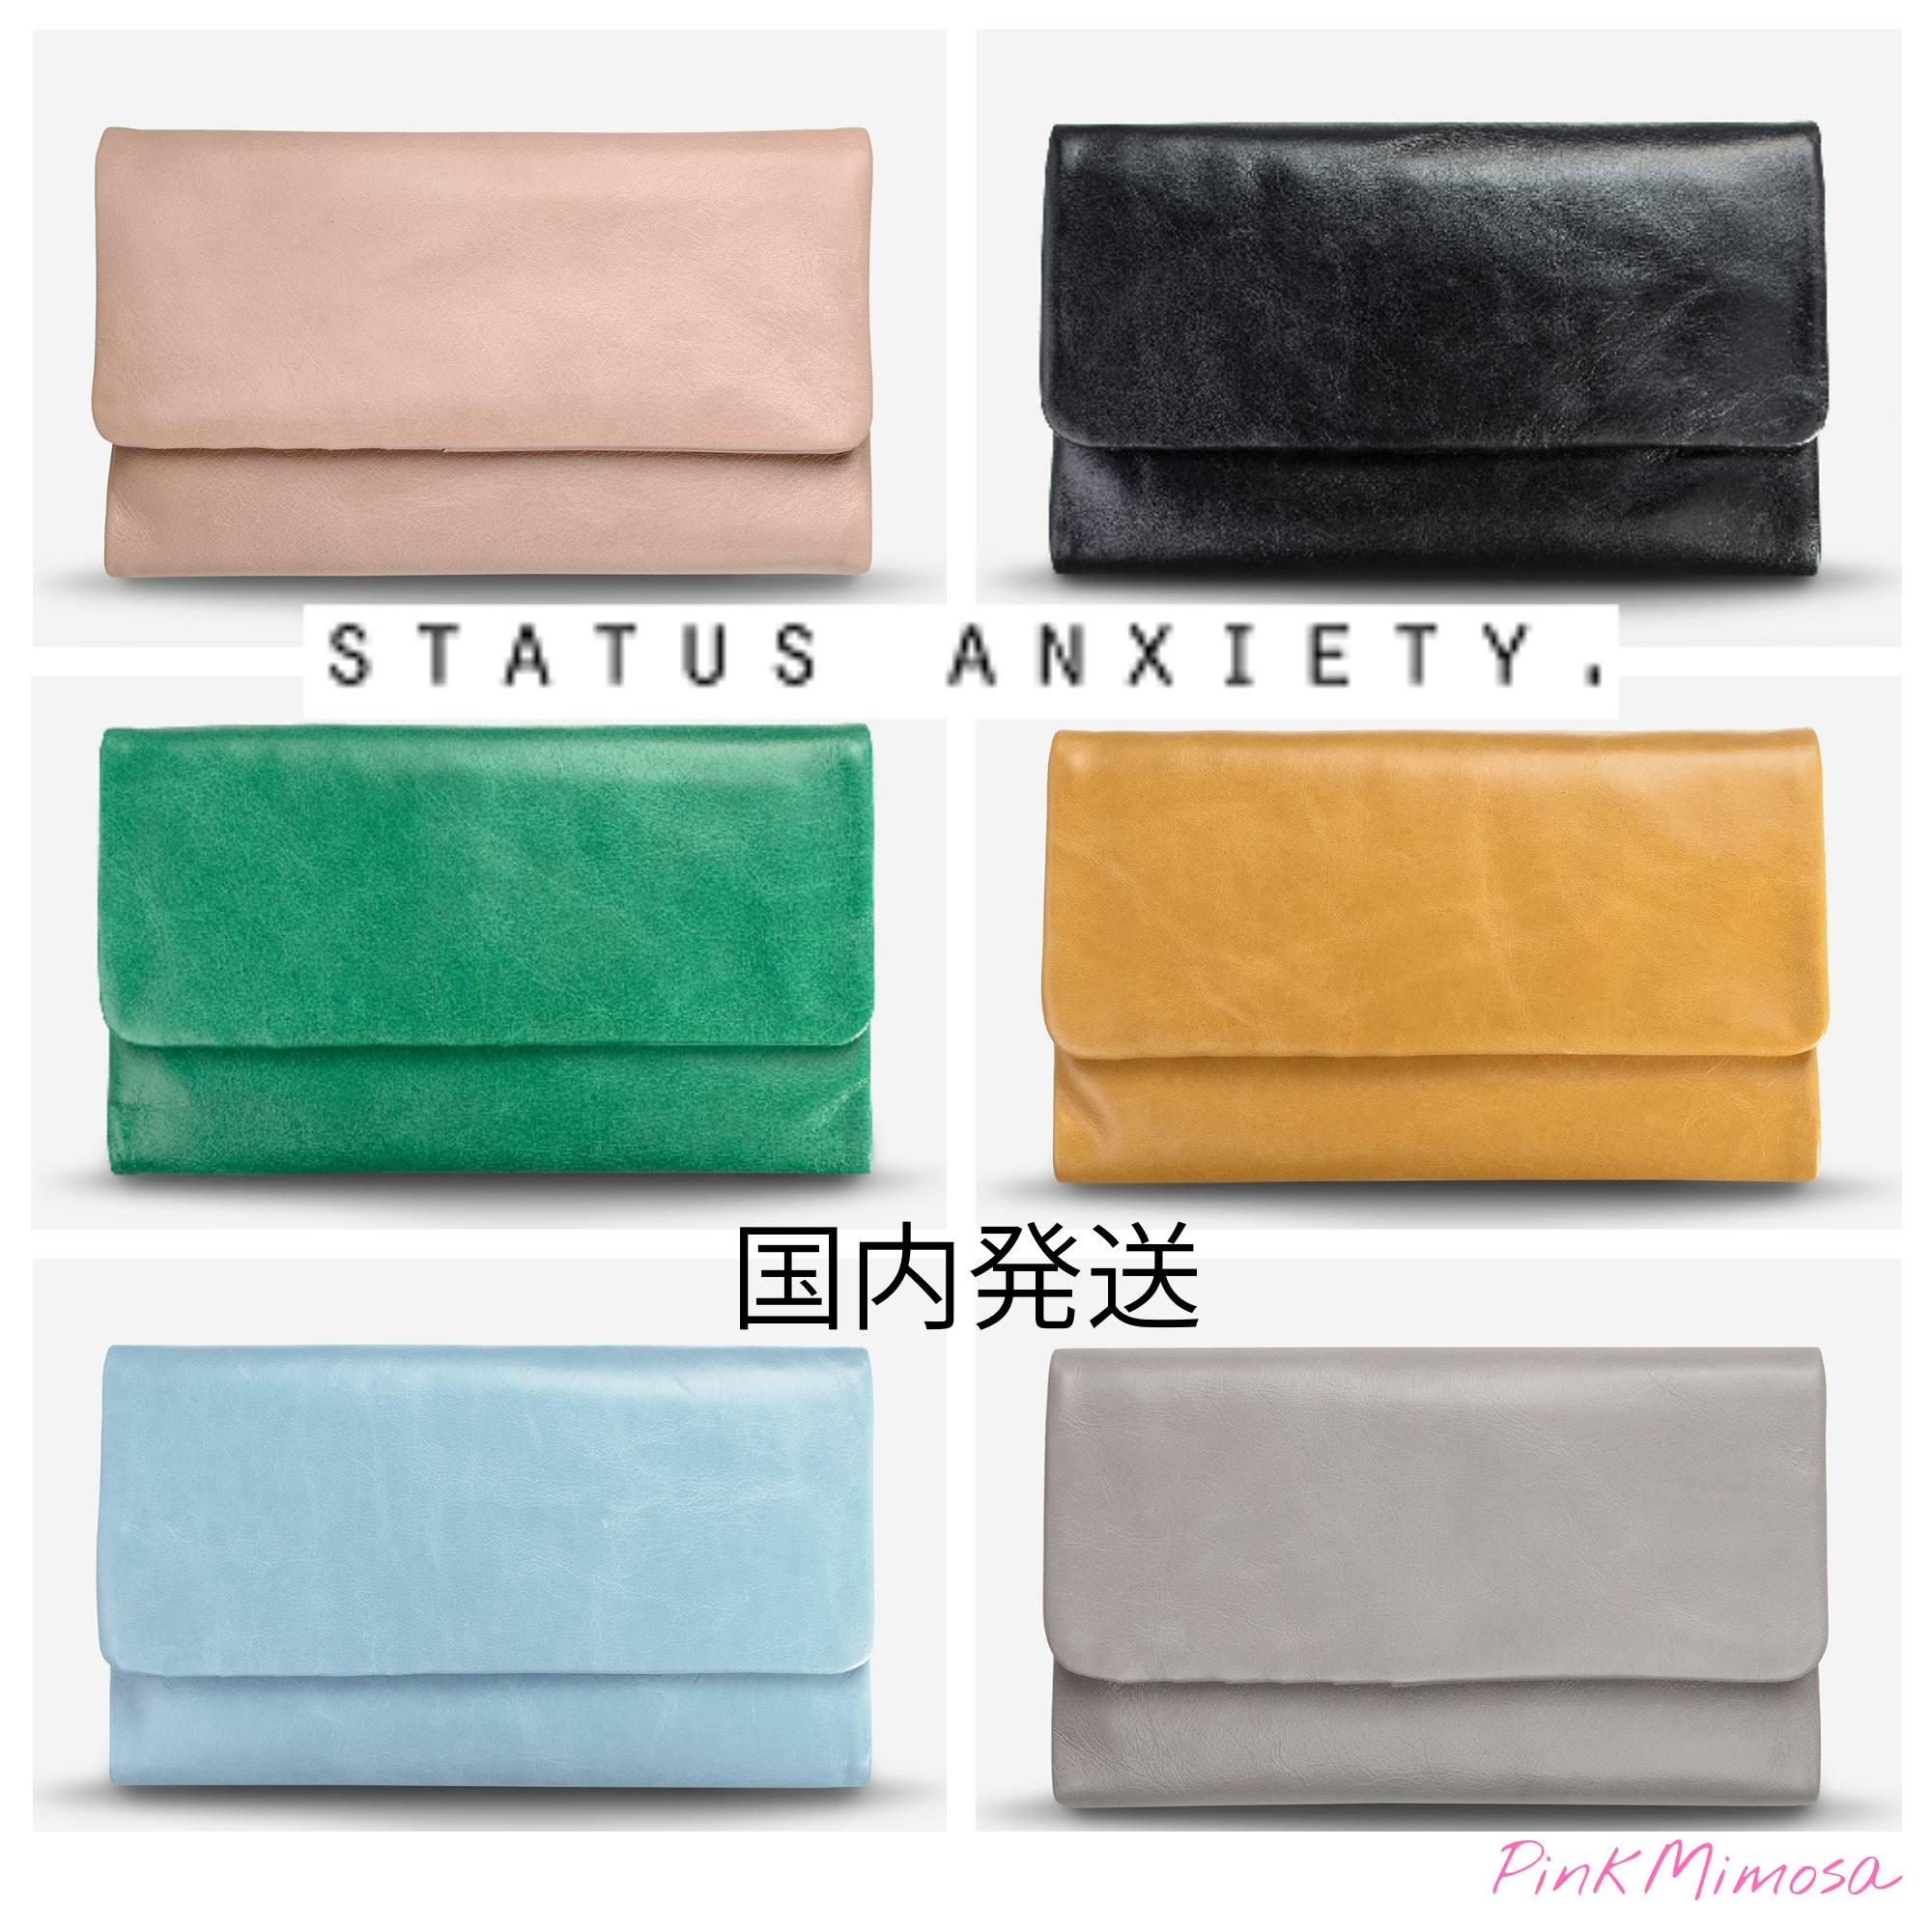 shop status anxiety wallets & card holders